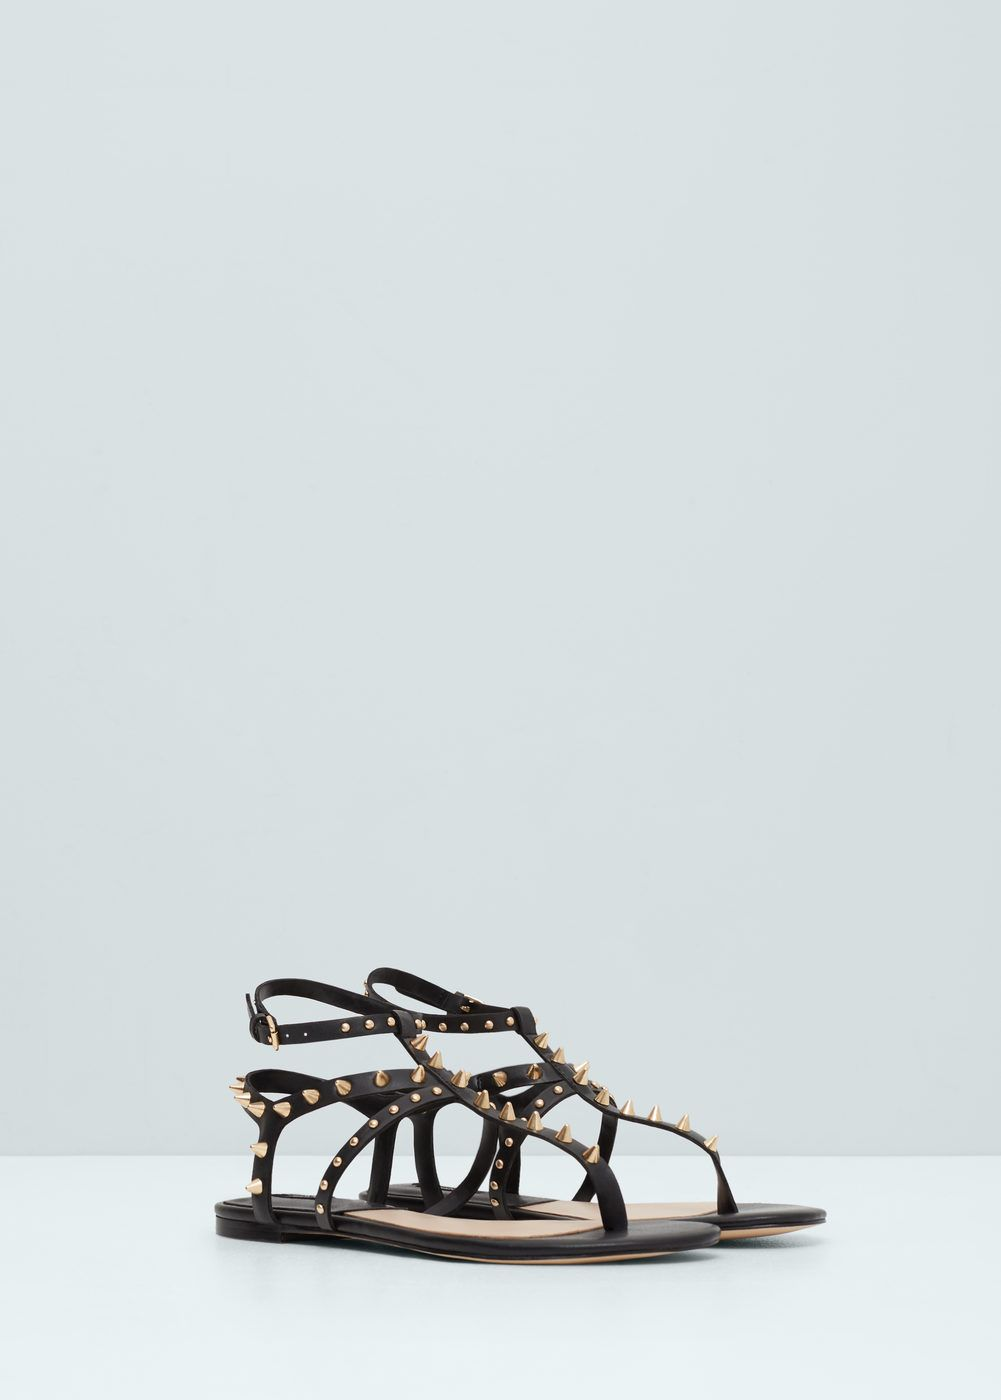 Sandals shoes usa - Studded Sandals